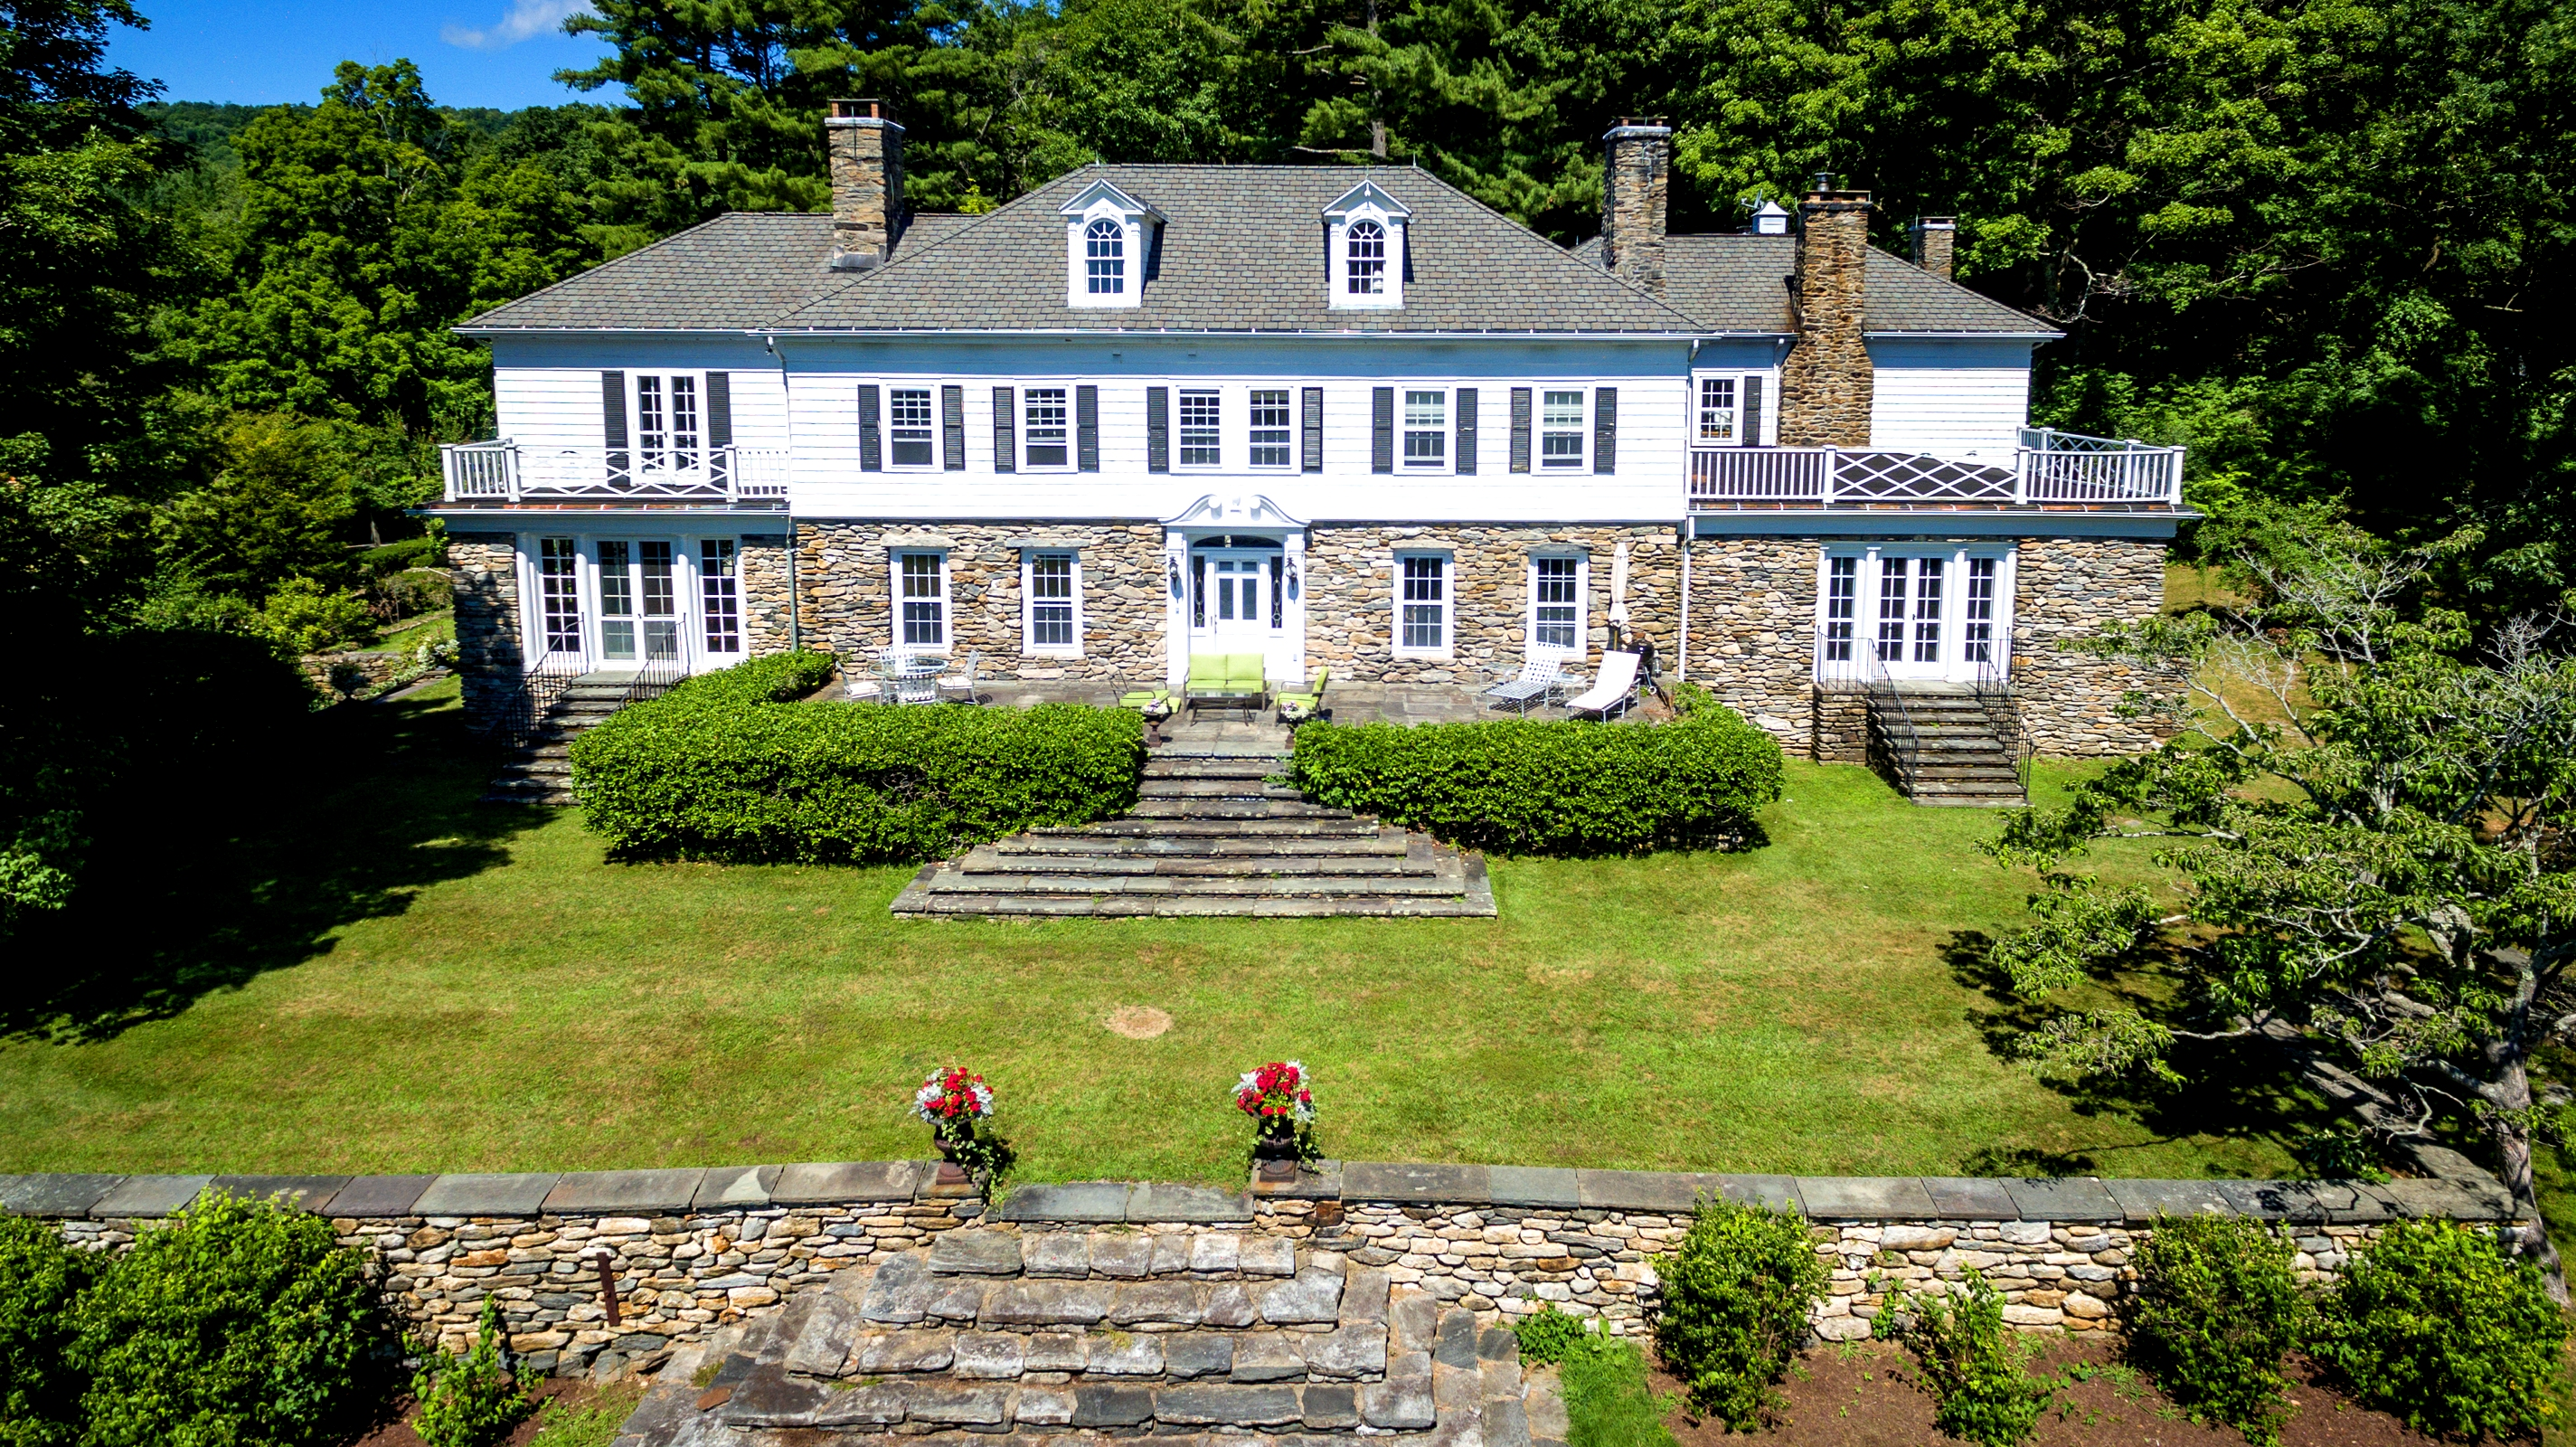 Single Family Home for Sale at Spectacular Turn-of-the-Century Berkshire Estate 2 Brace Road Tyringham, Massachusetts, 01264 United States